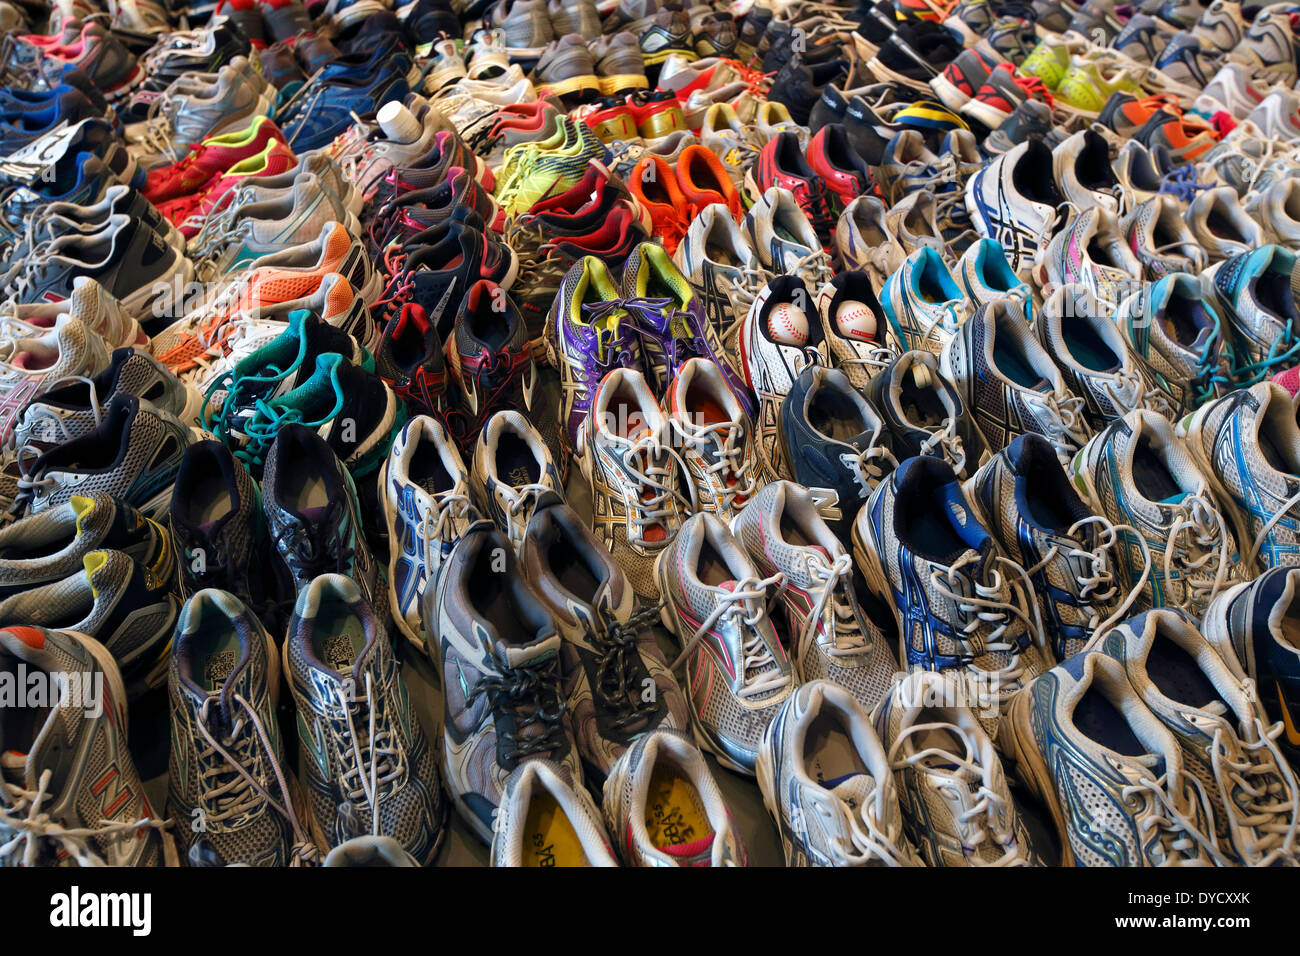 Boston, Massachusetts, USA, 14th April 2014. A collection of running shoes is on display at the Marathon Memorial exhibit in the Boston Public Library. Tuesday marks the one-year anniversary of the Boston Marathon bombings. - Stock Image